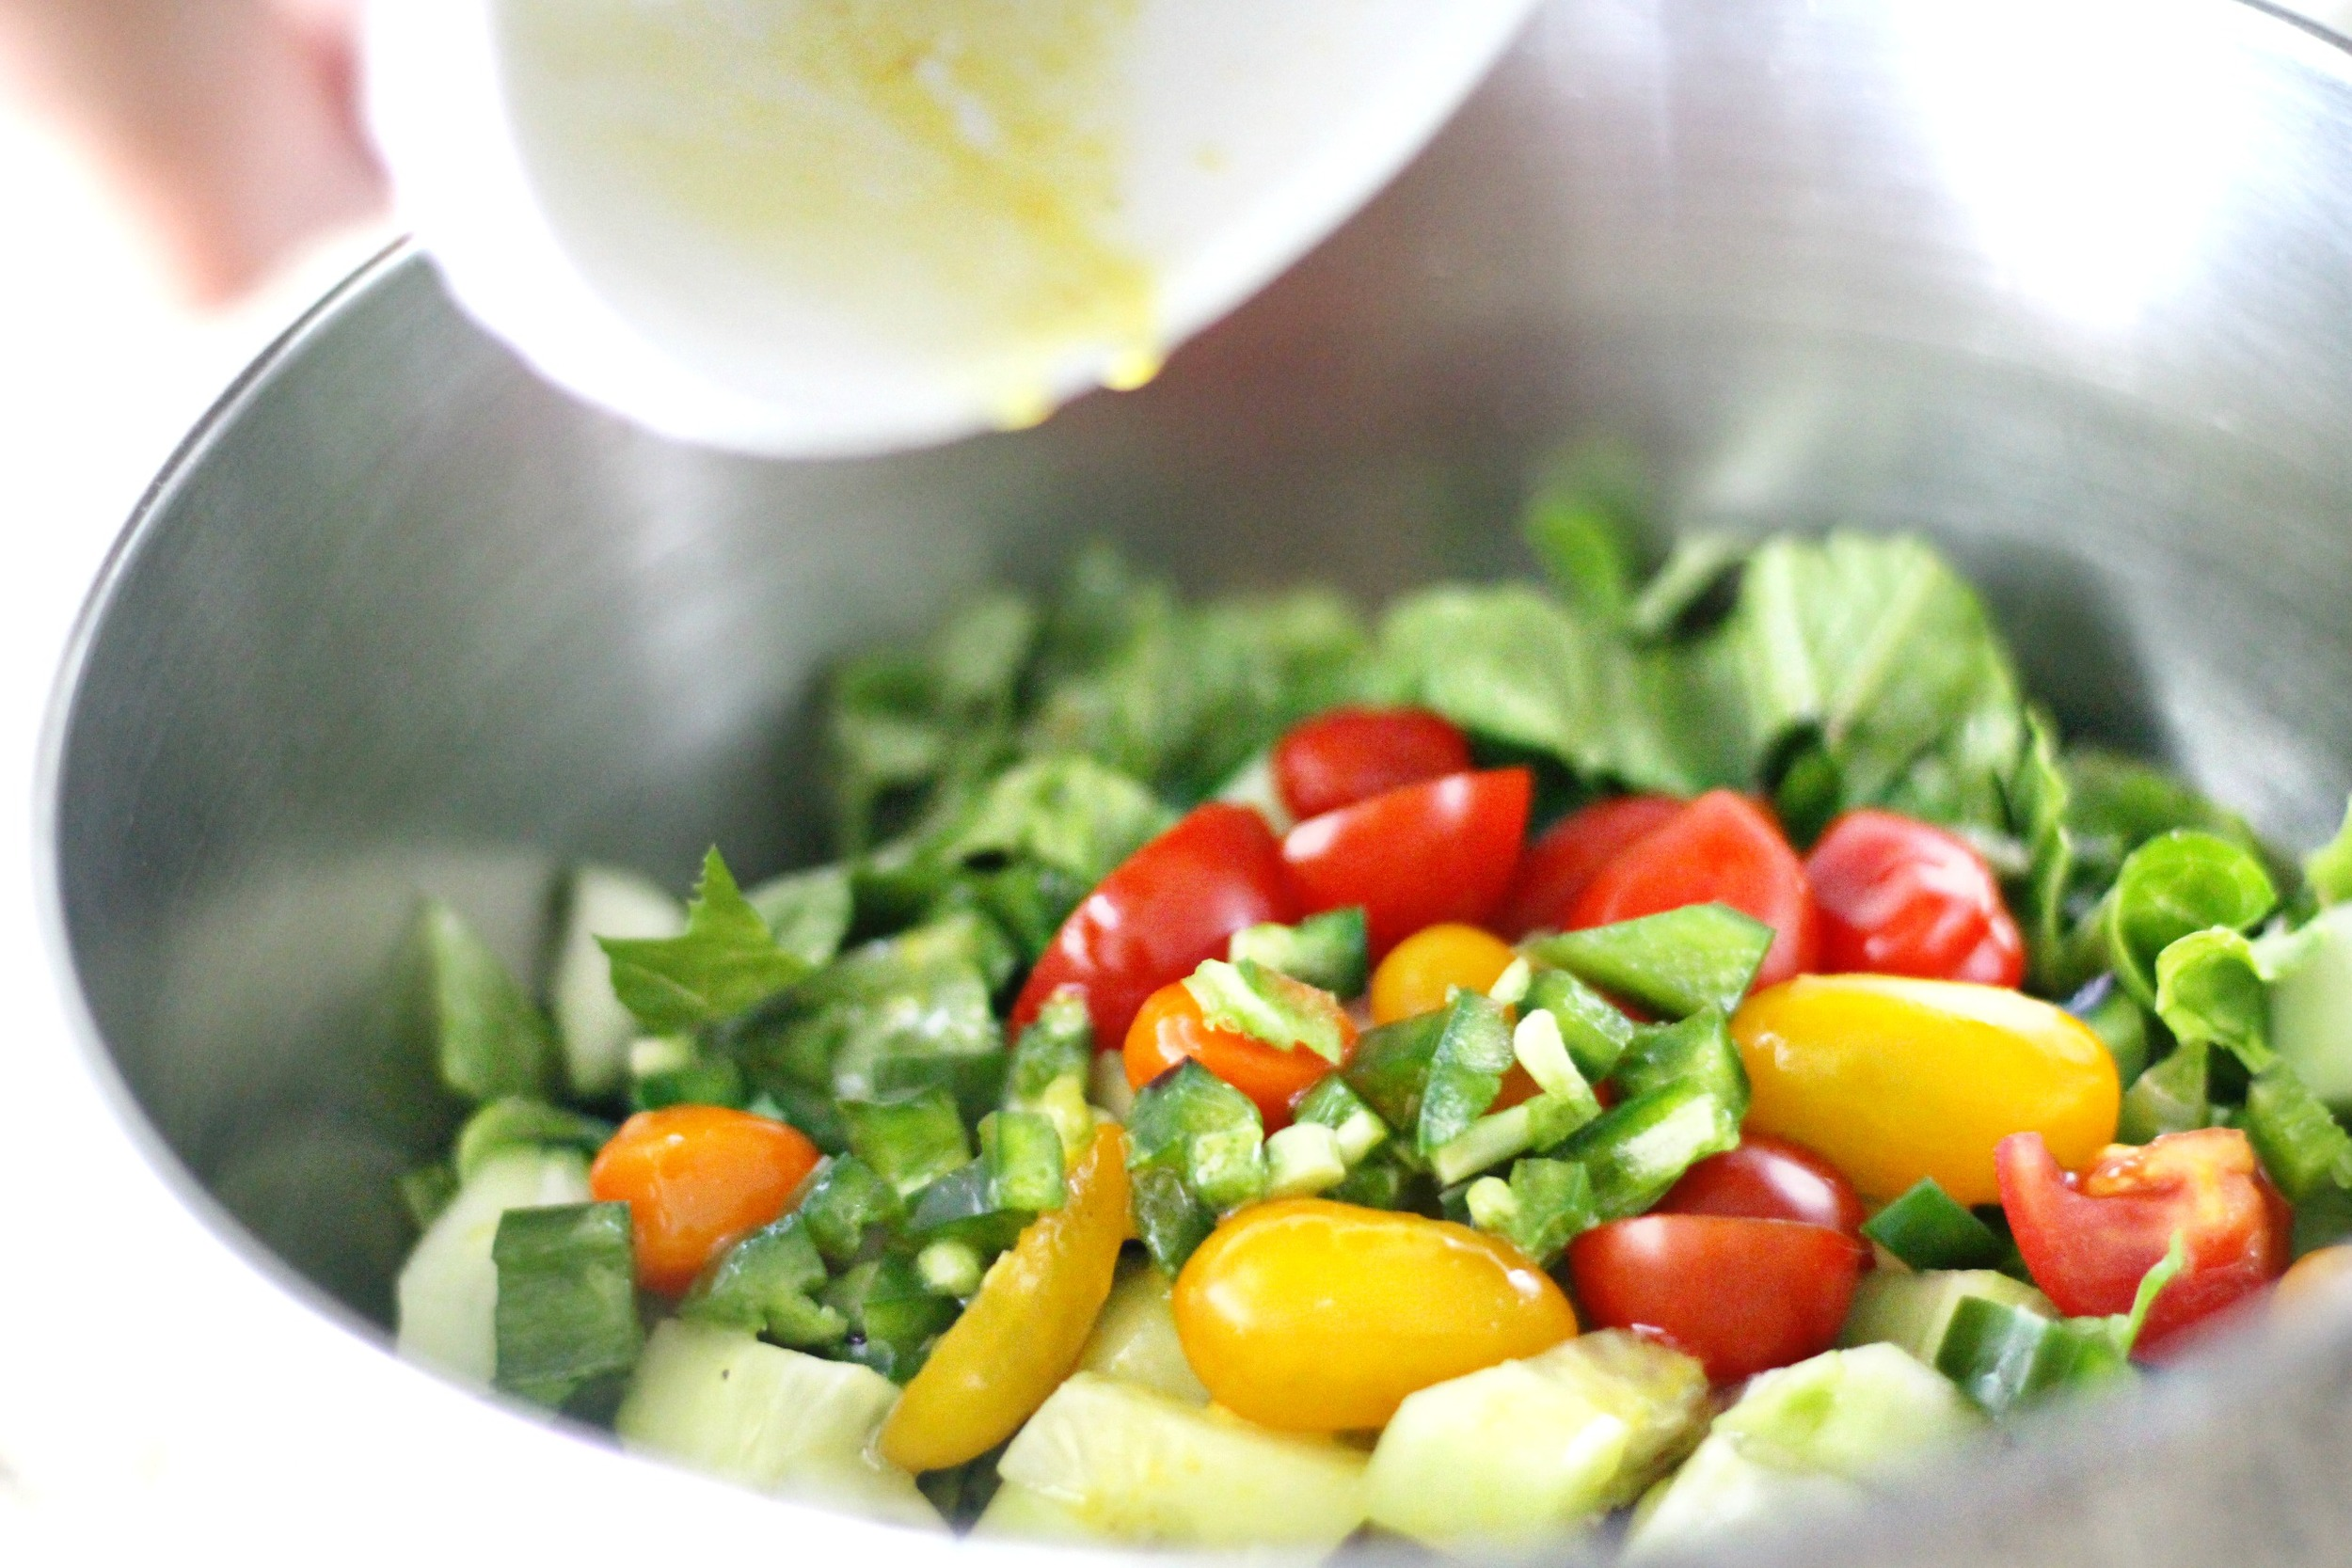 Pour in the whisked dressing into the salad bowl. Toss + mix it! I like my salads a bit over dressed so pour it in little by little to best suit you.